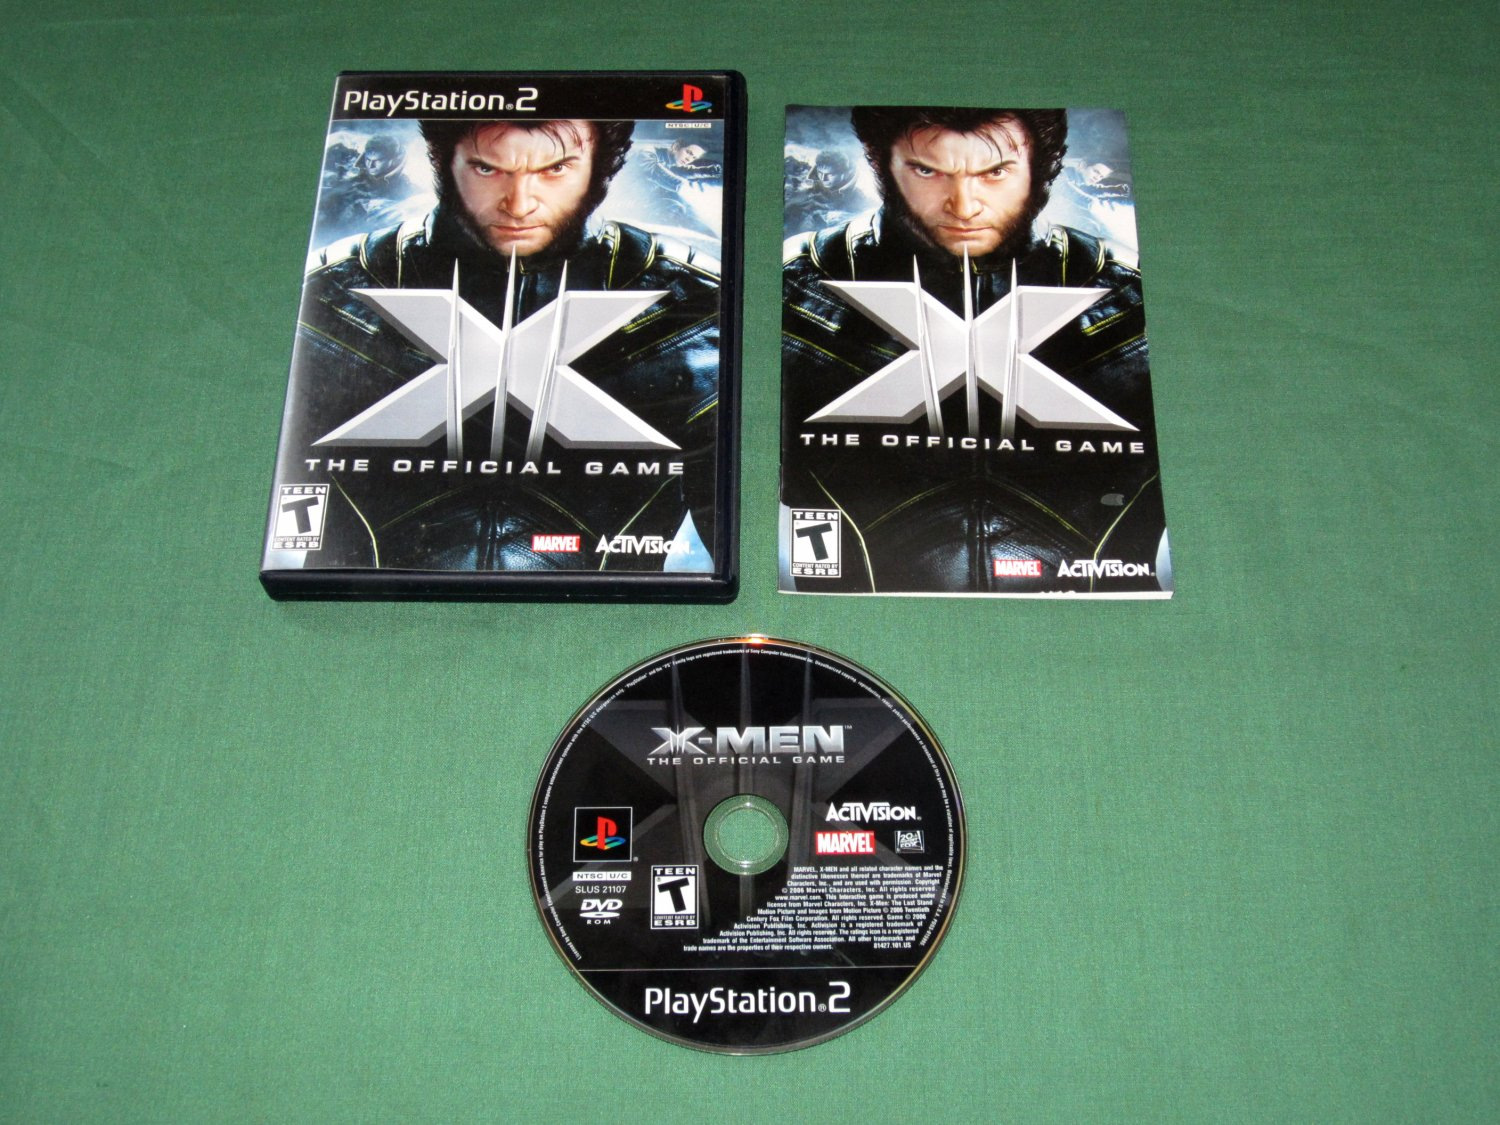 X-Men: The Official Game (Playstation 2)